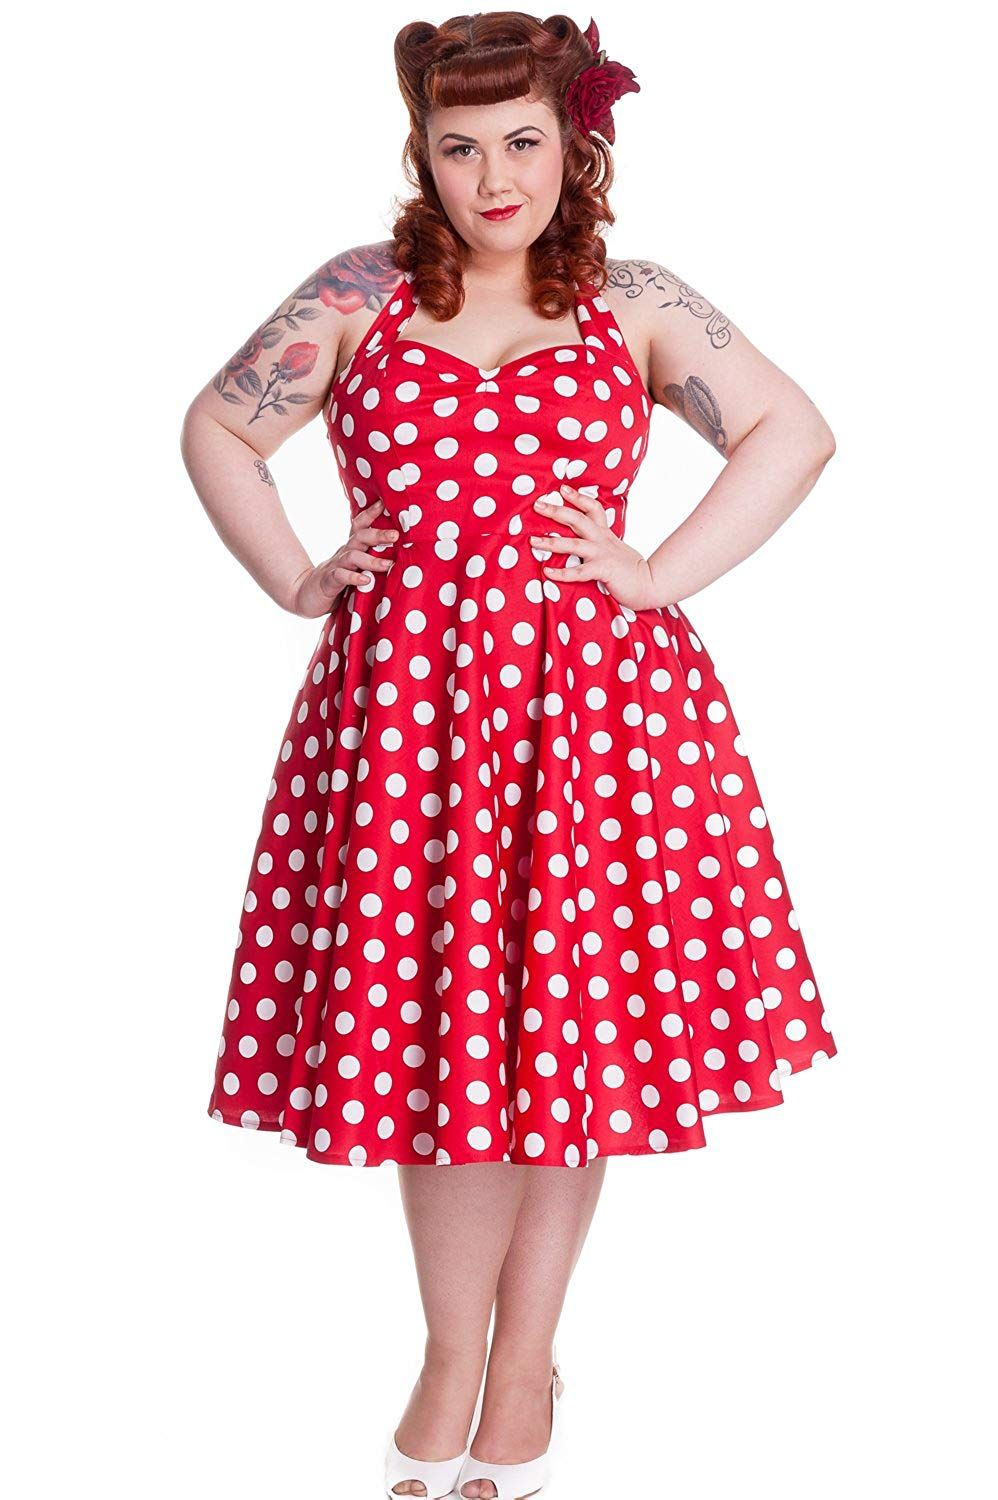 1950s Plus Size Dresses, Clothing | Retro 1940s and 1950s ...